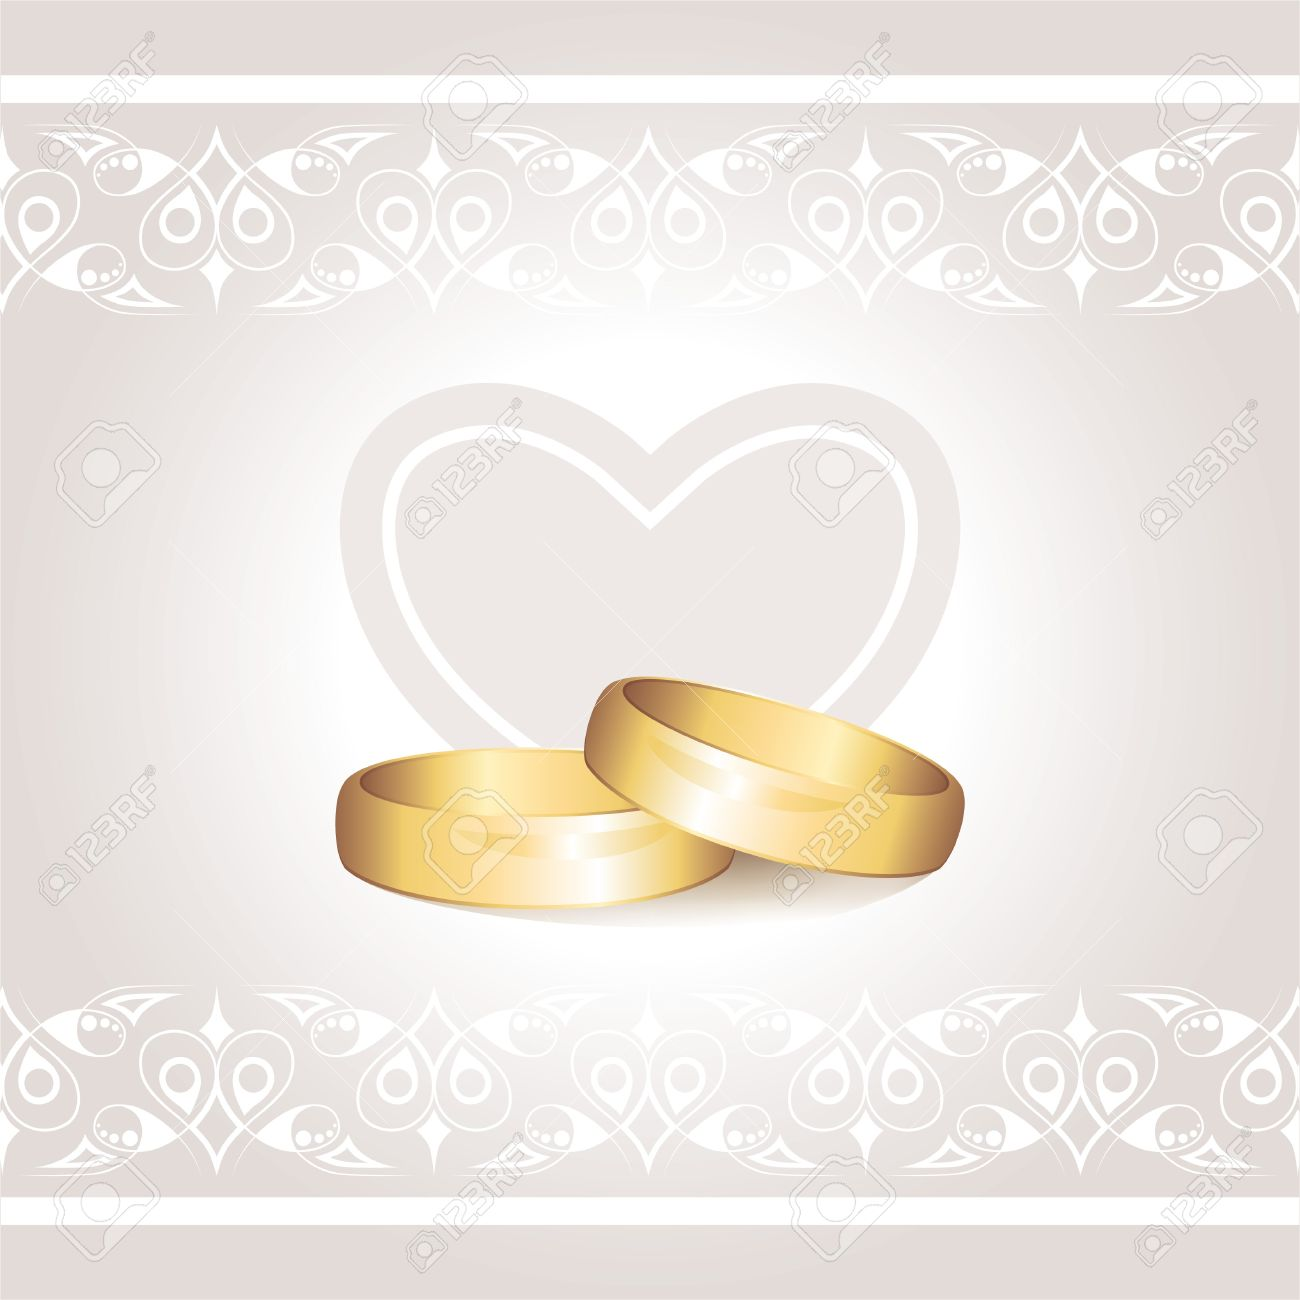 Wedding Invitation With Gold Rings On Gray Background Stock Photo